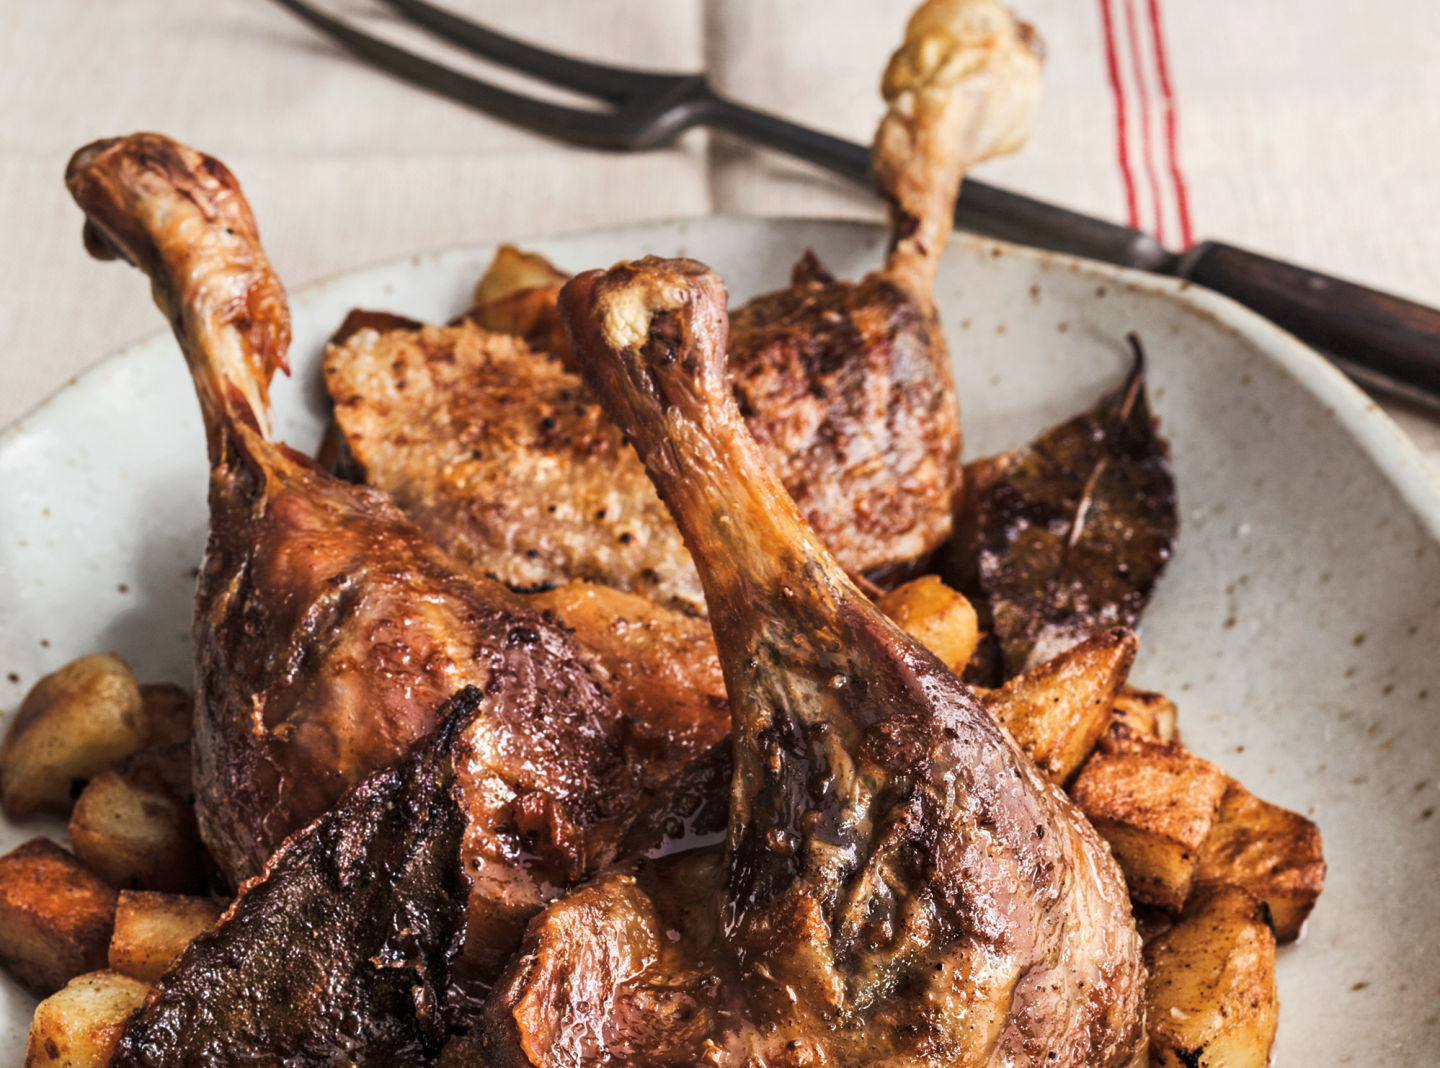 Counterfeit Duck Confit: All Of The Flavor, Without The Labor